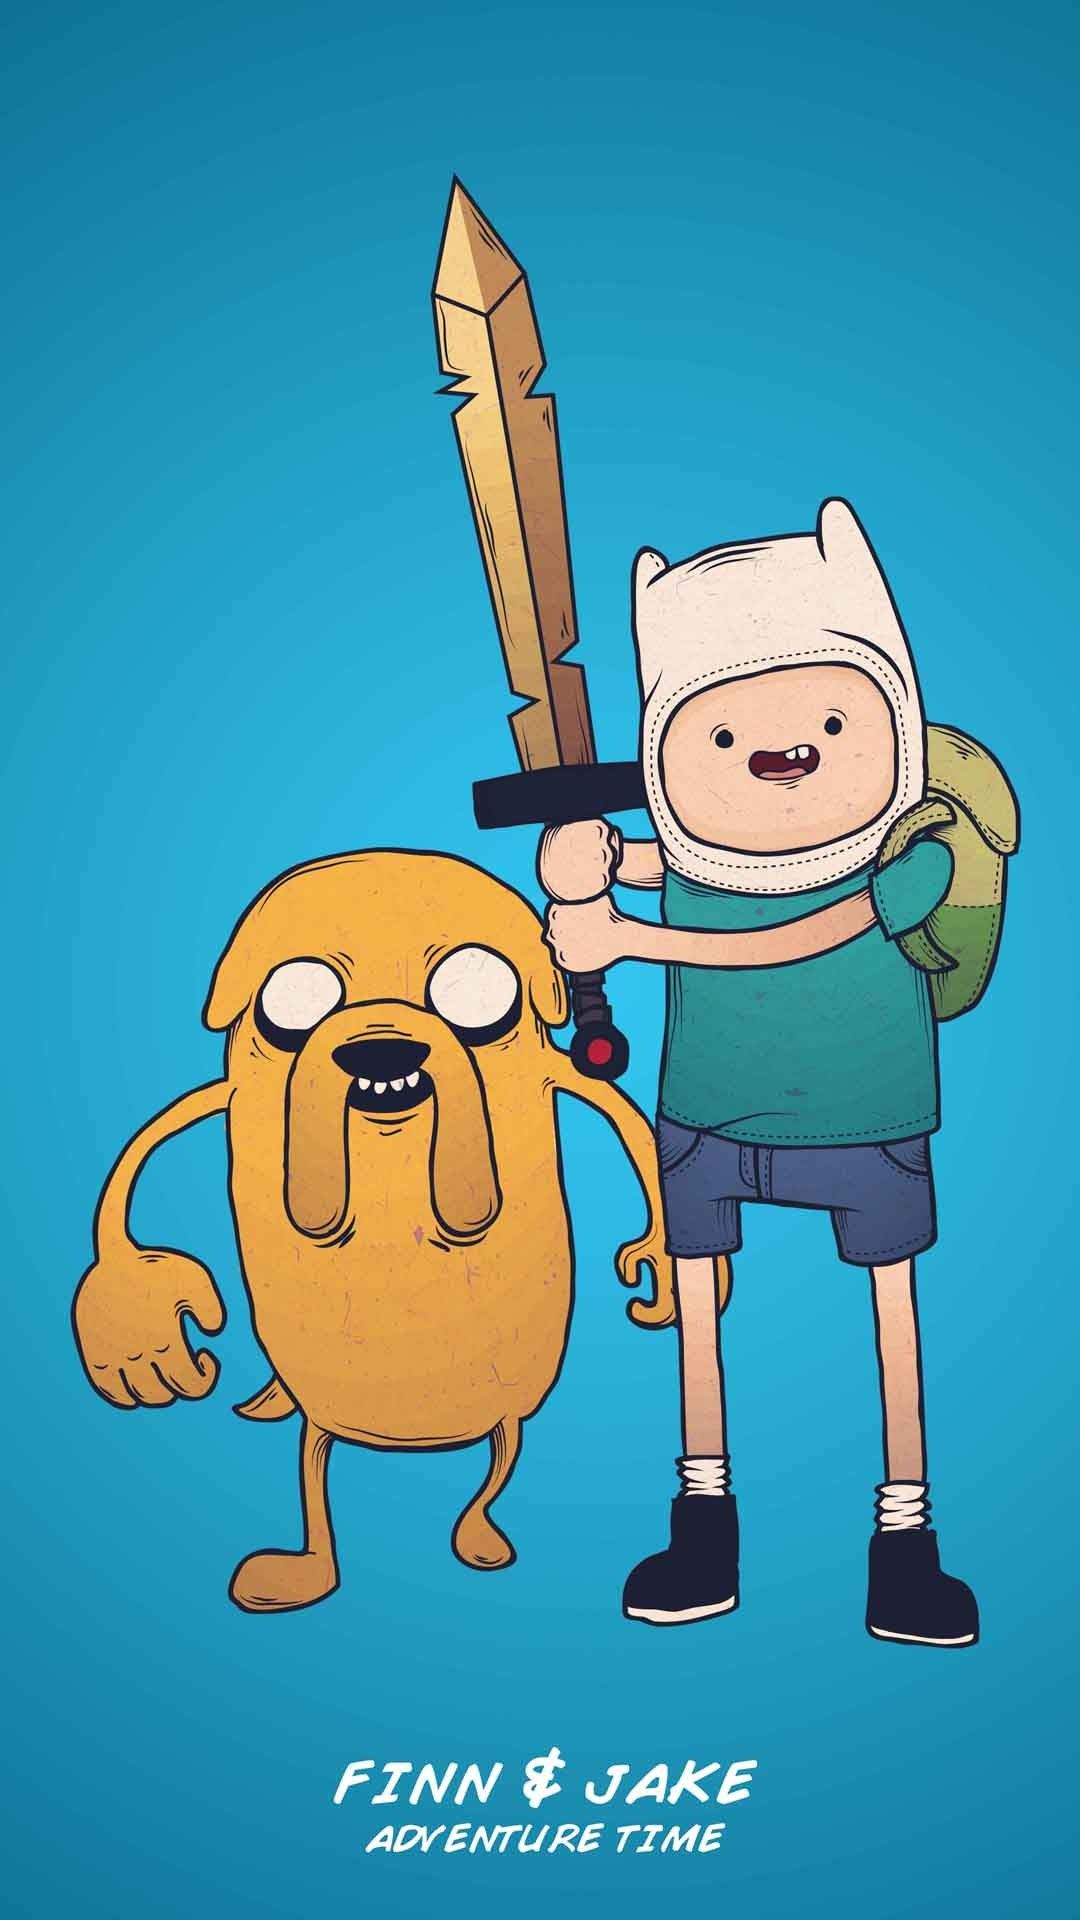 Aesthetic Adventure Time Wallpaper Android Adventure Time Wallpaper Jake Adventure Time Adventure Time Iphone Wallpaper